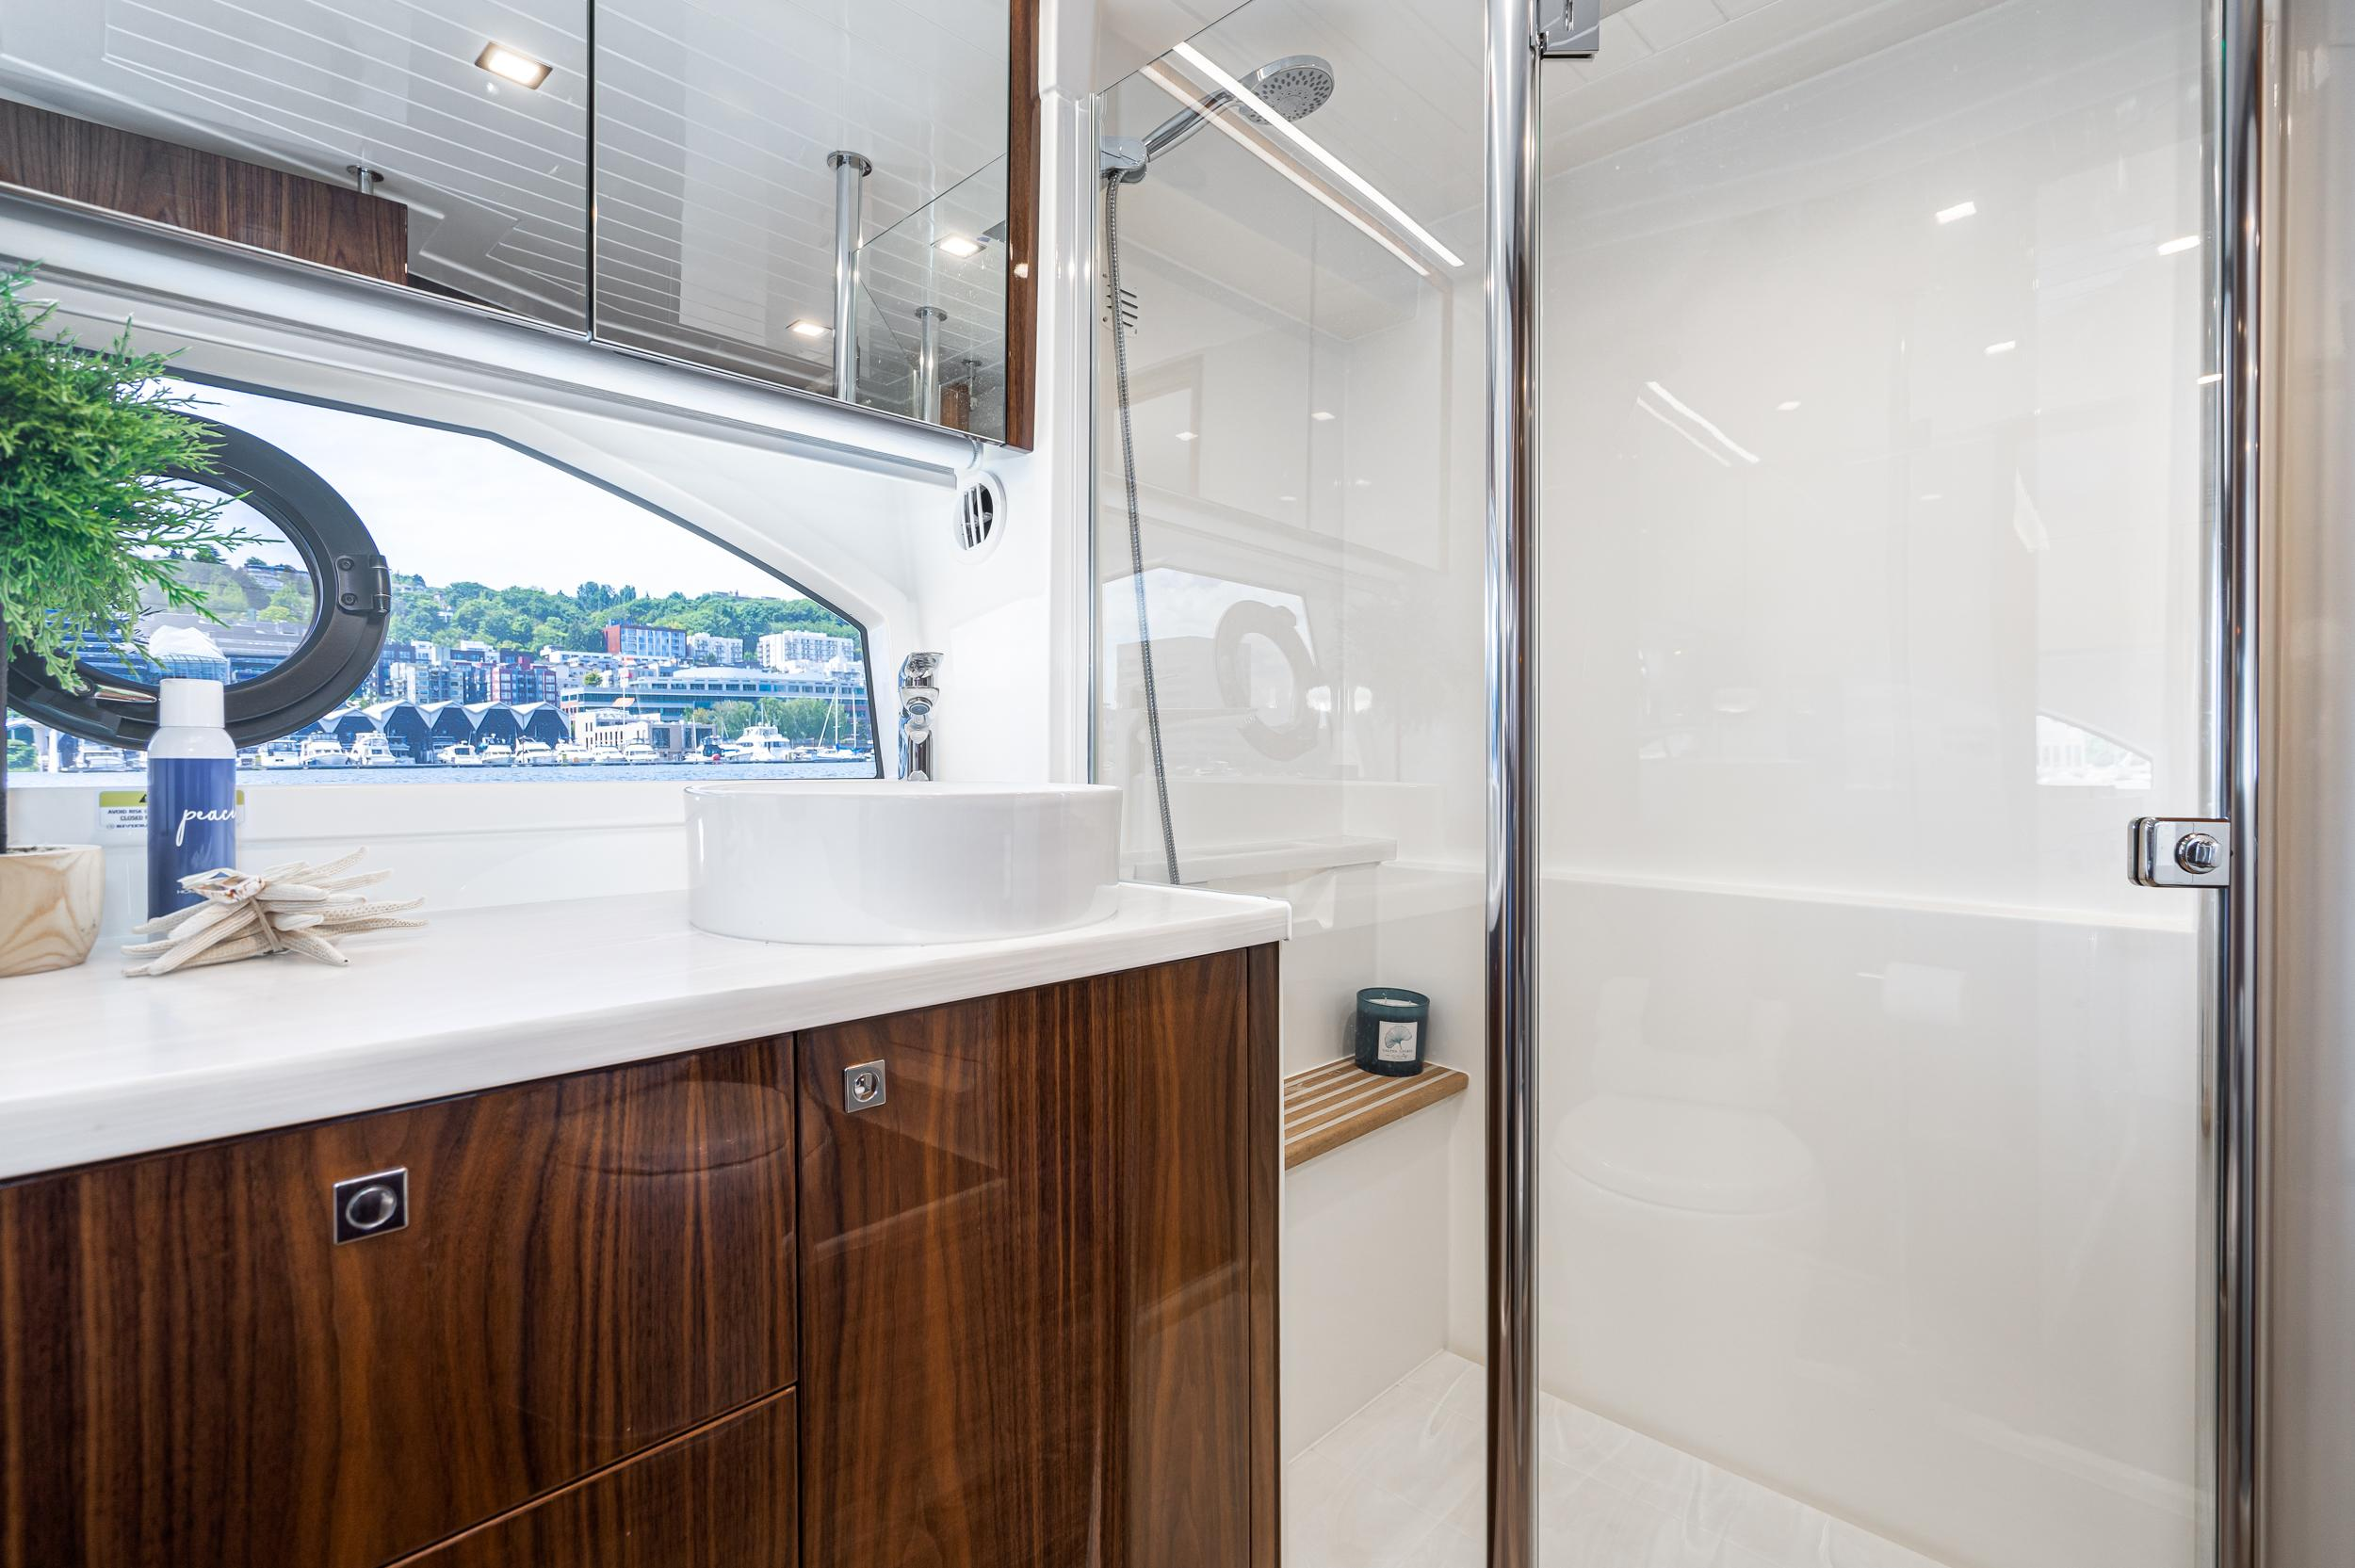 2021 Riviera 64 Sports Motor Yacht #R011 inventory image at Sun Country Coastal in Newport Beach